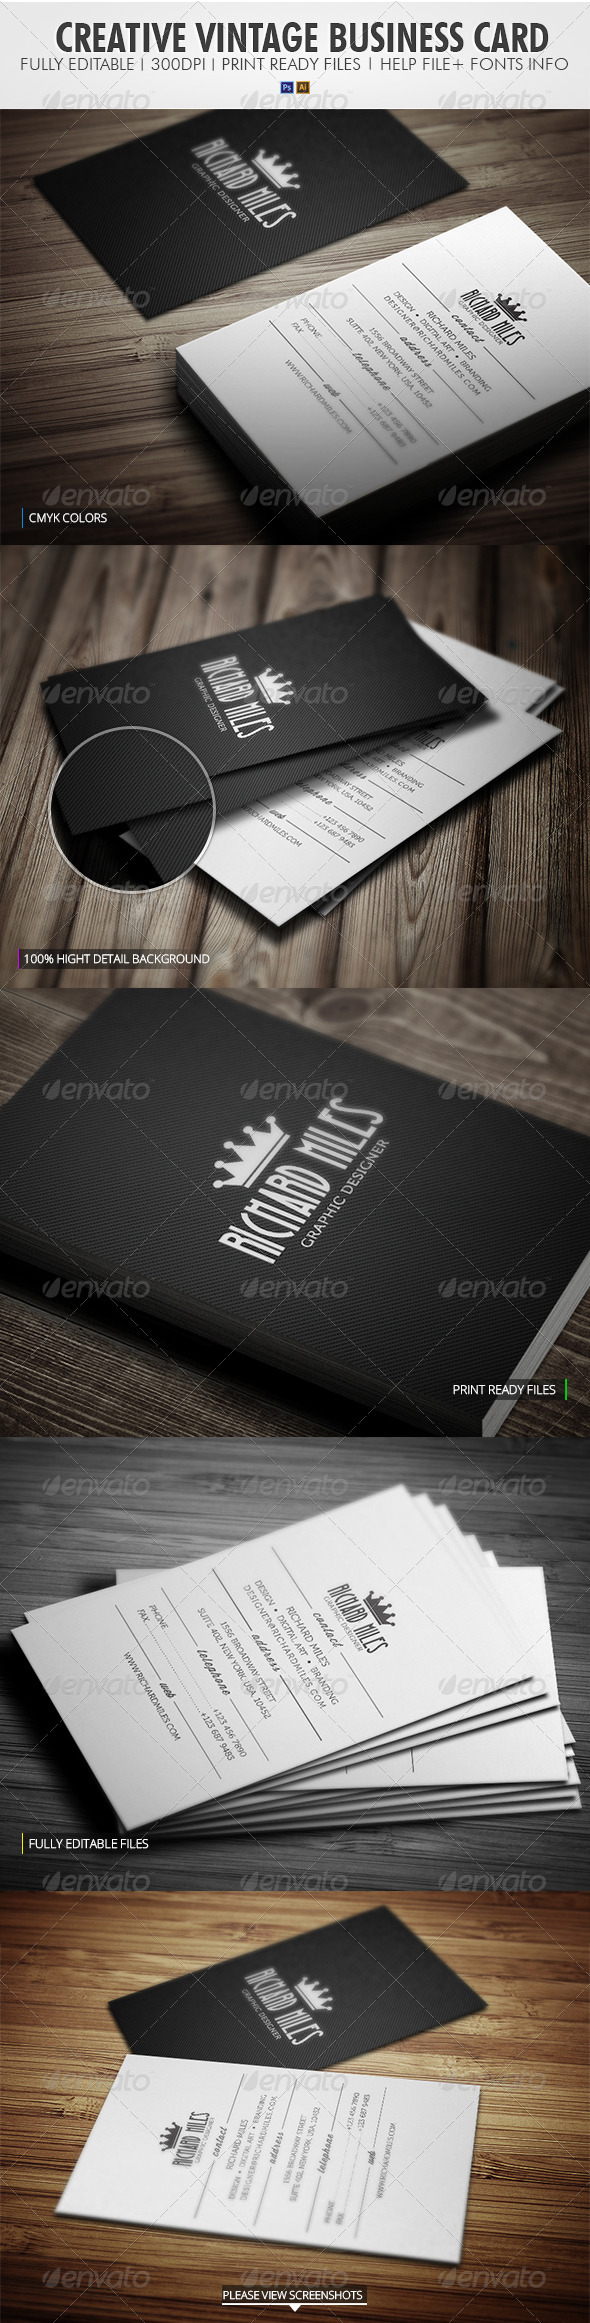 GraphicRiver Creative Vintage Business Card 4170770